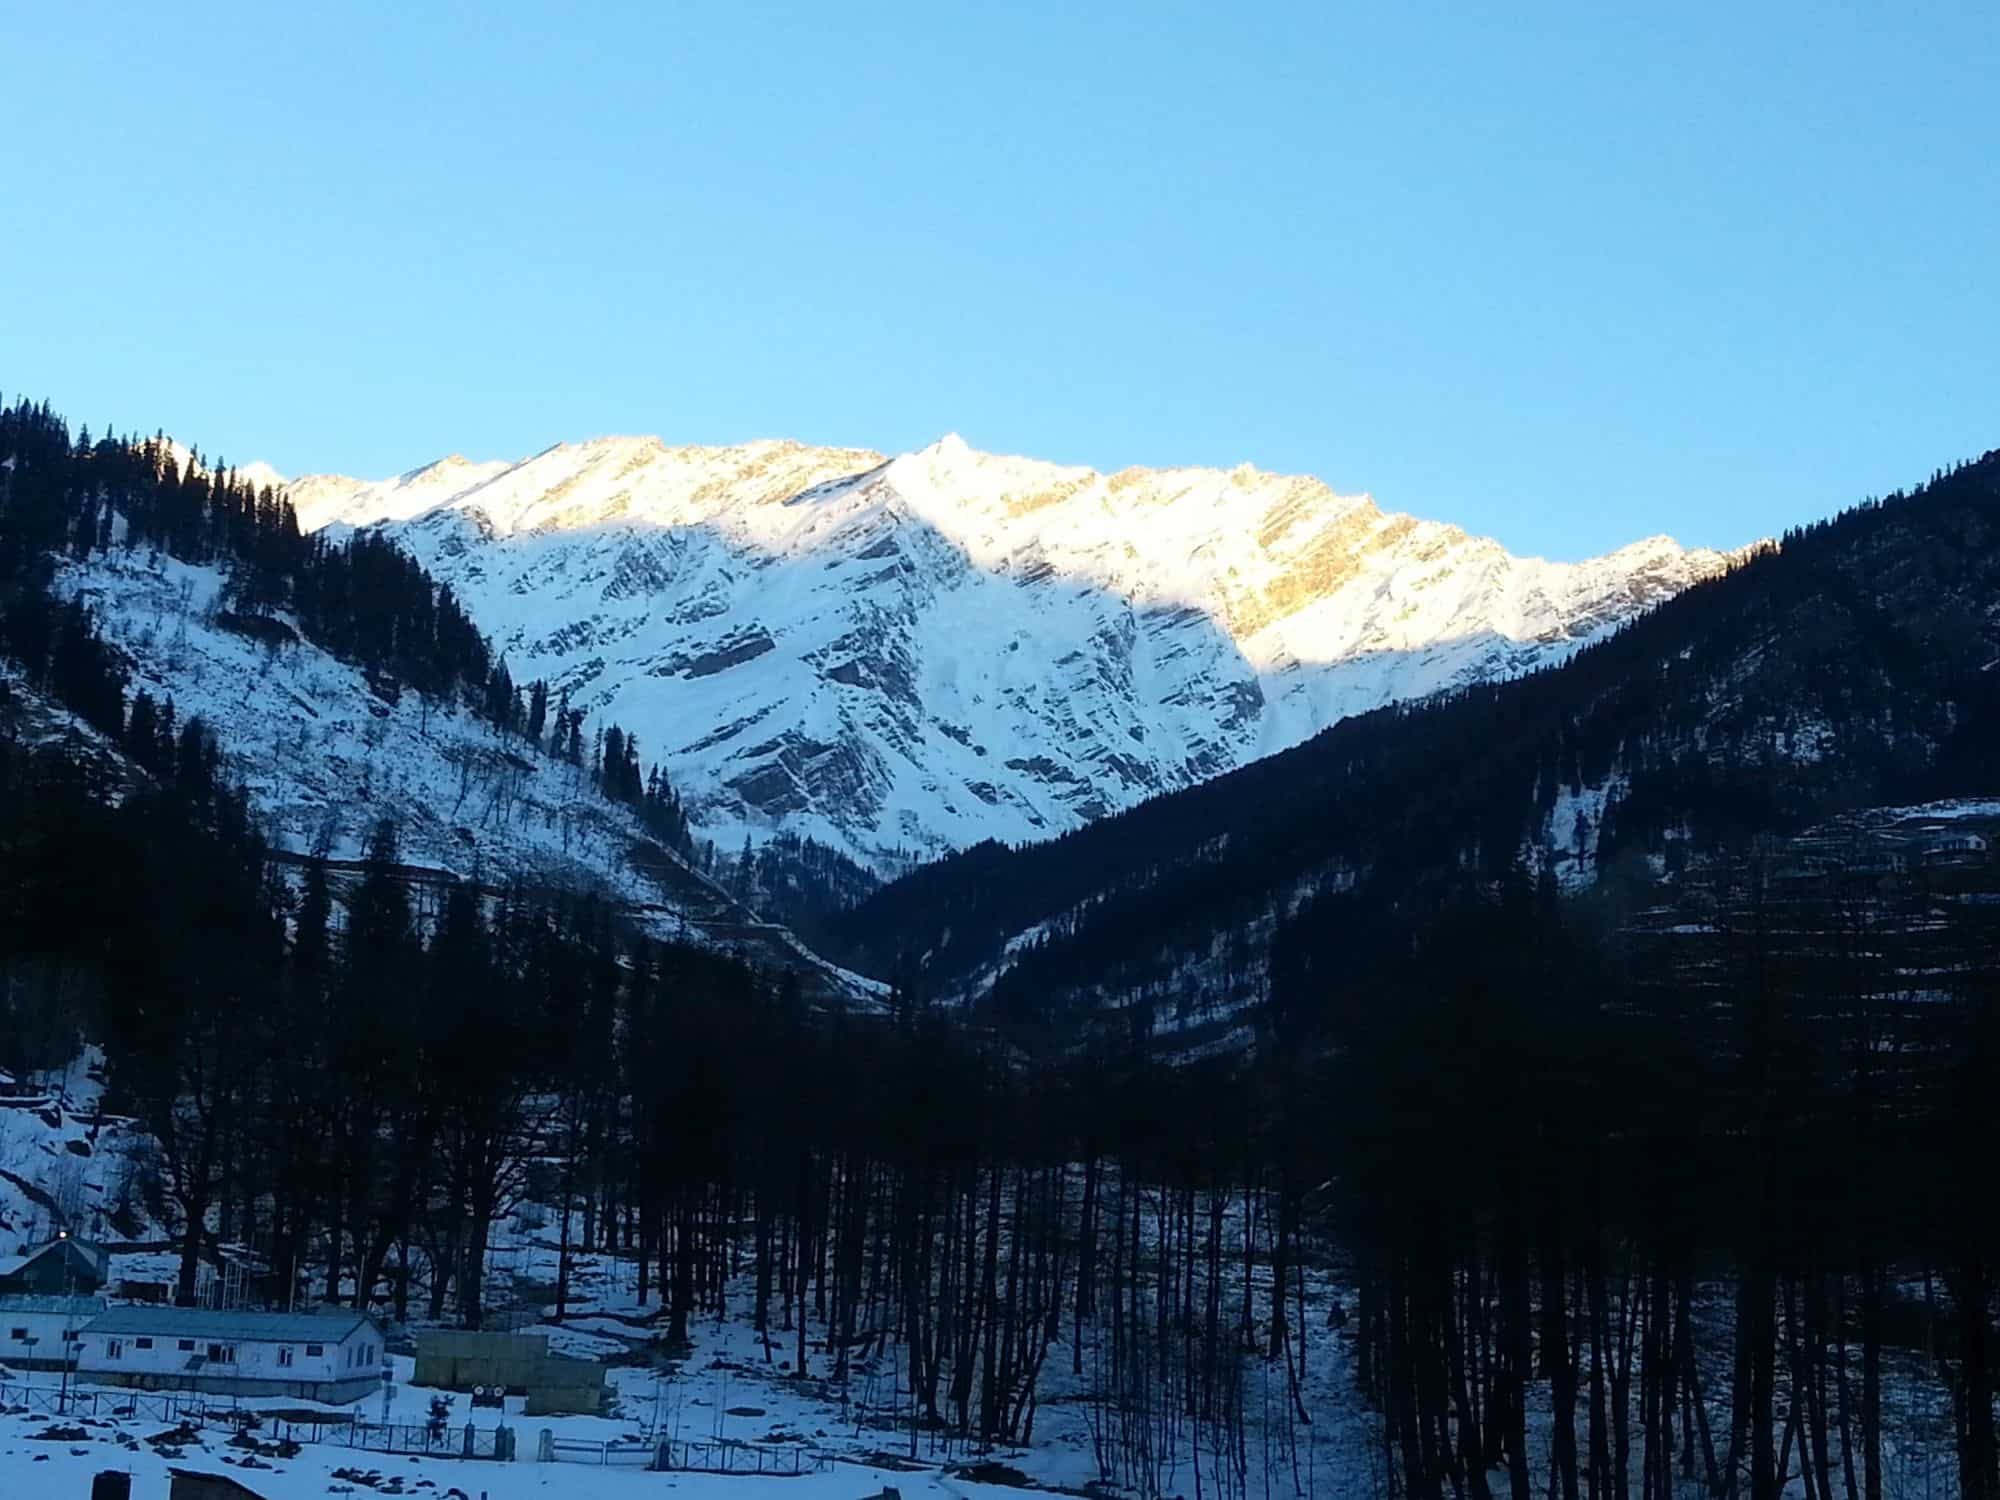 Solang valley and Kothi in winters